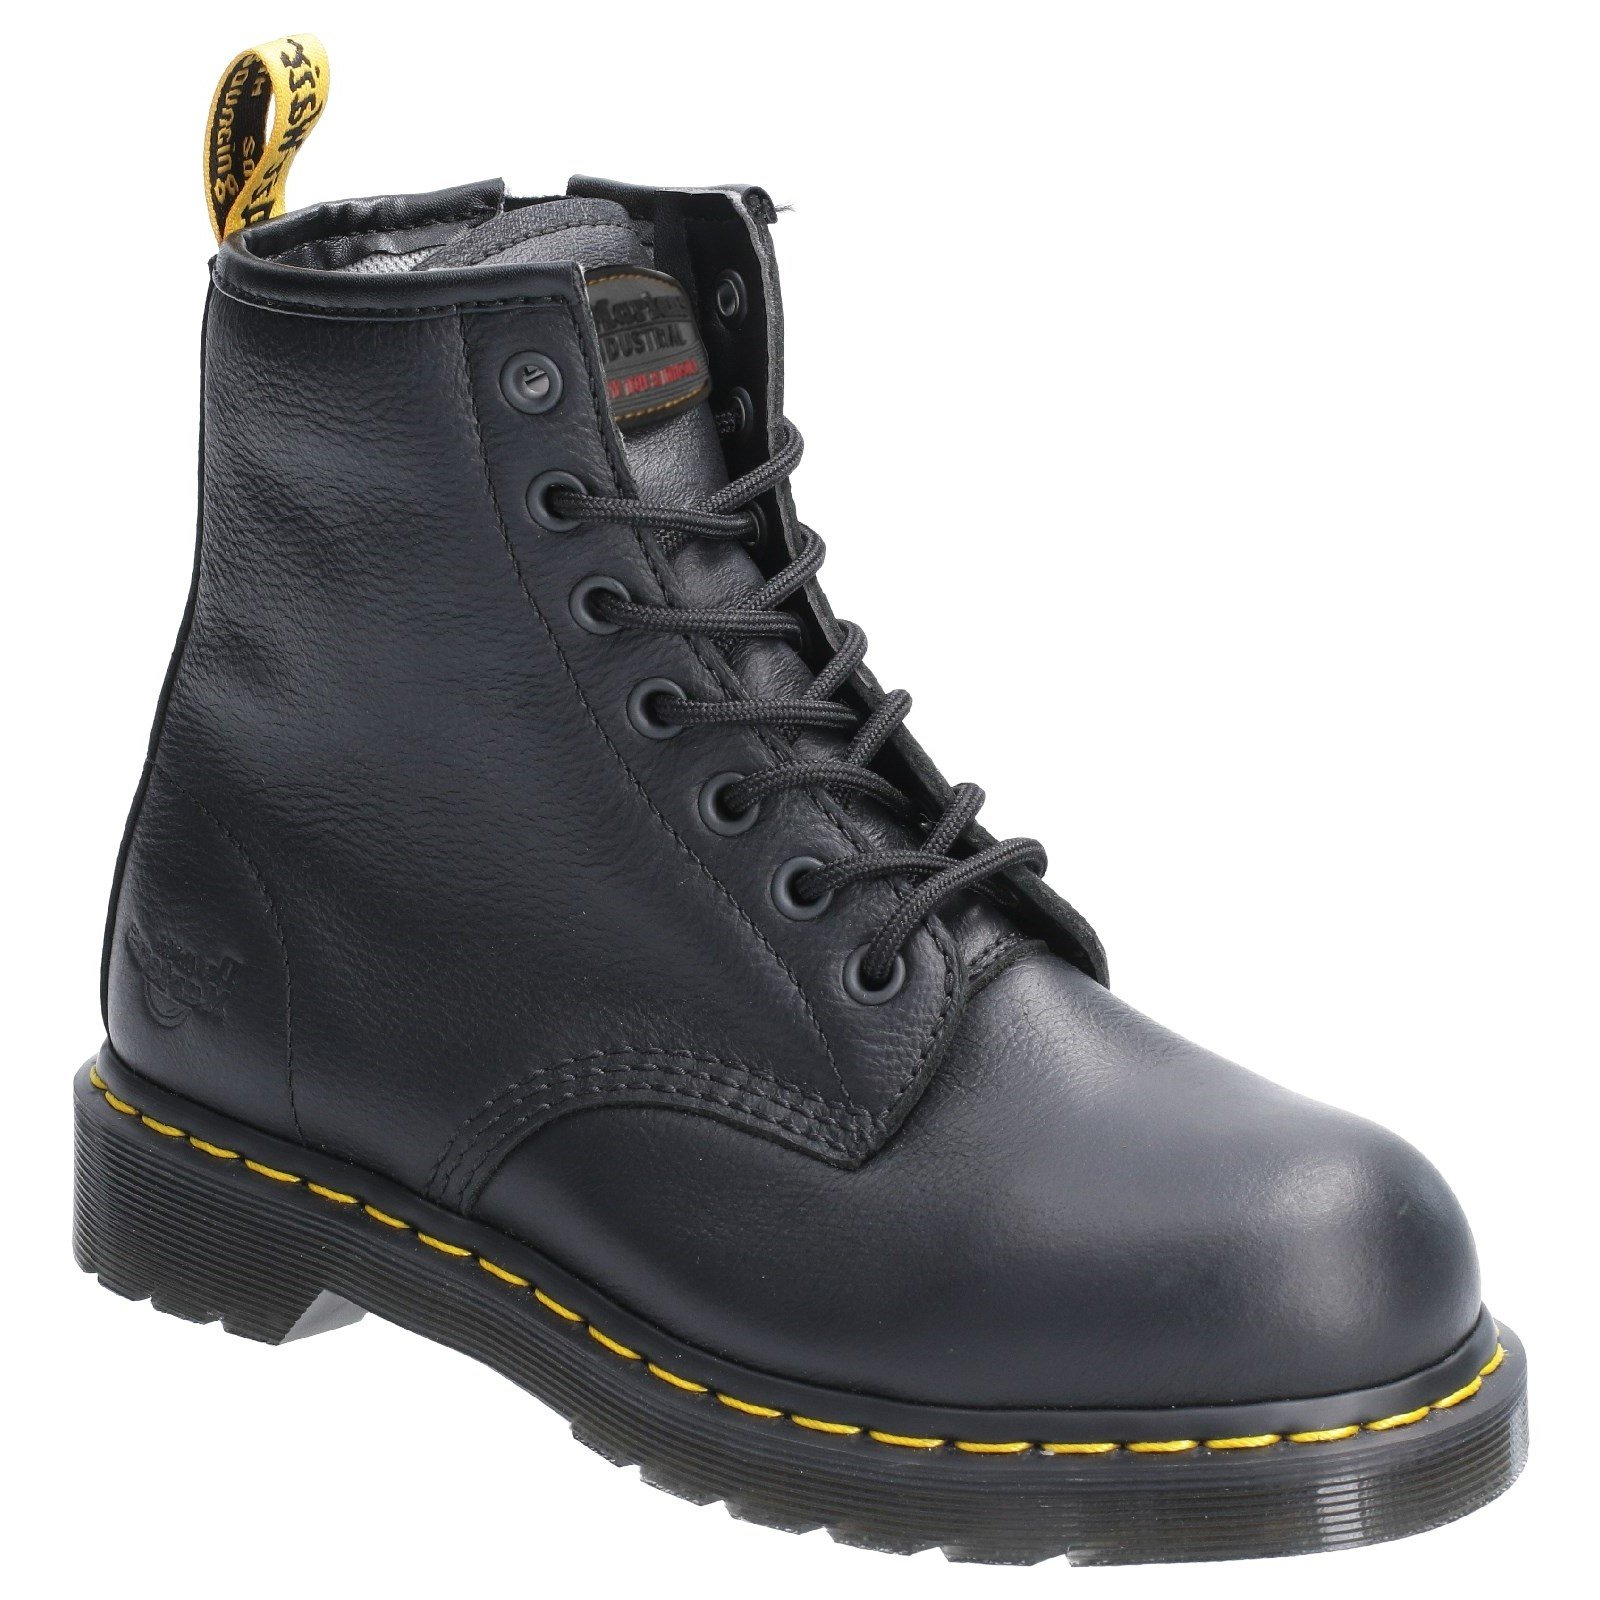 Dr Martens Women's Maple Zip Lace Up Safety Boot Various Colours 29515 - Black 4